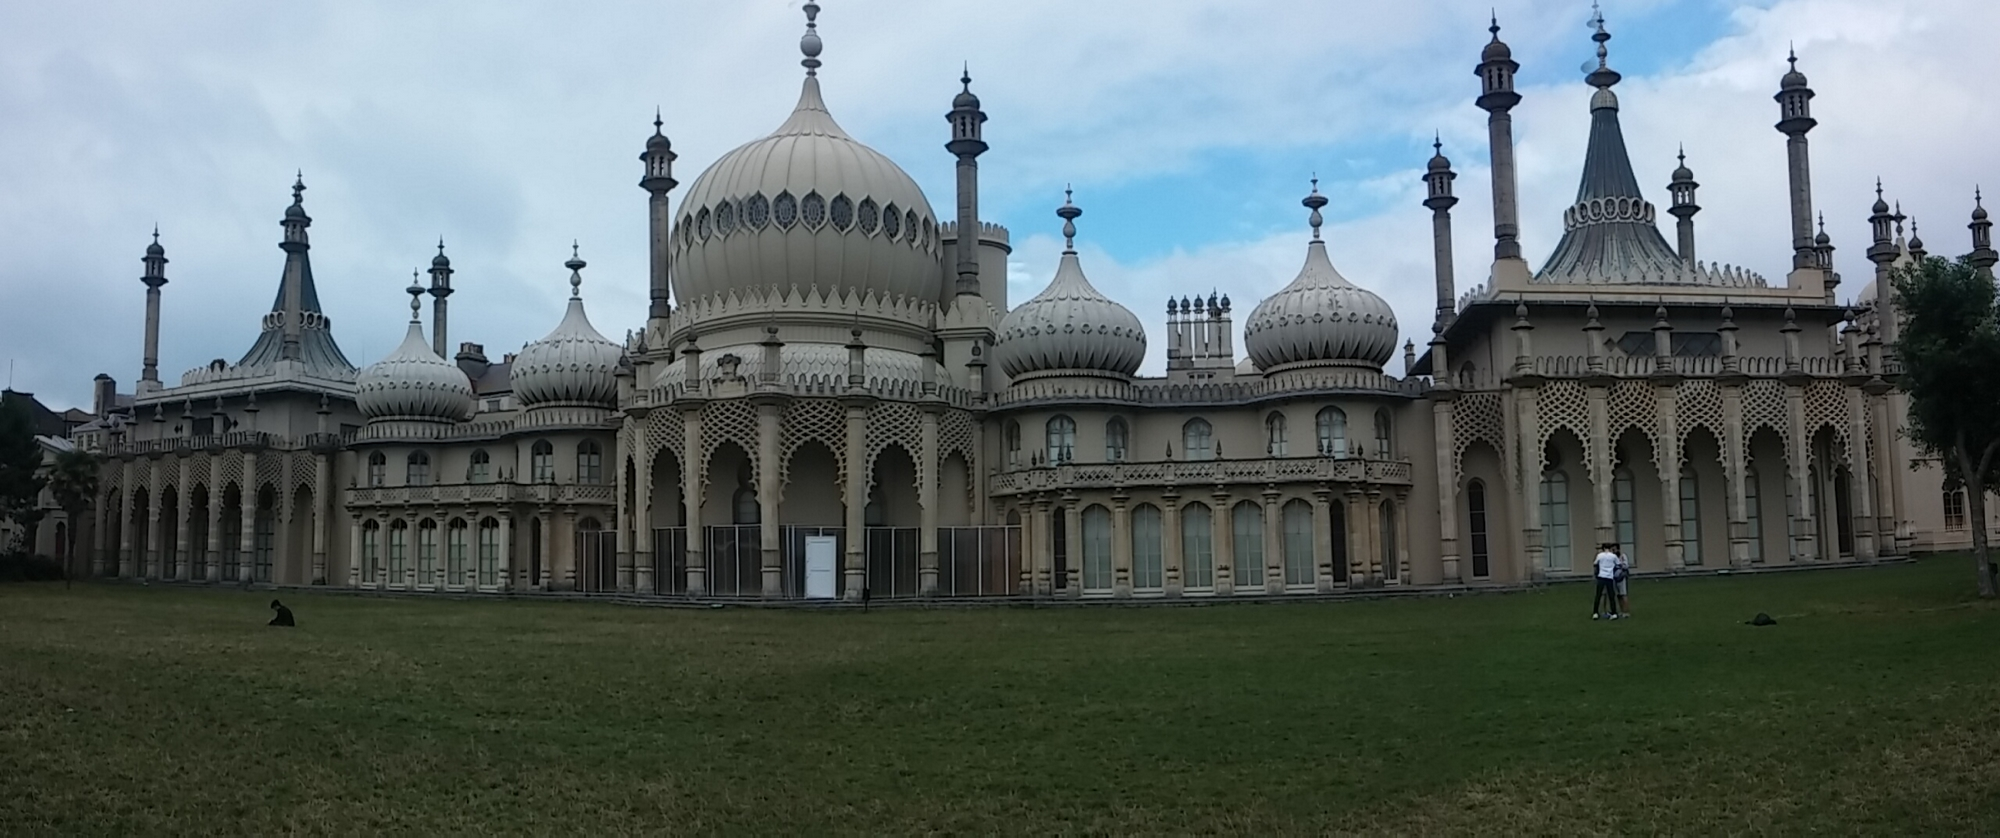 BRIGHTON #2 : Royal Pavilion